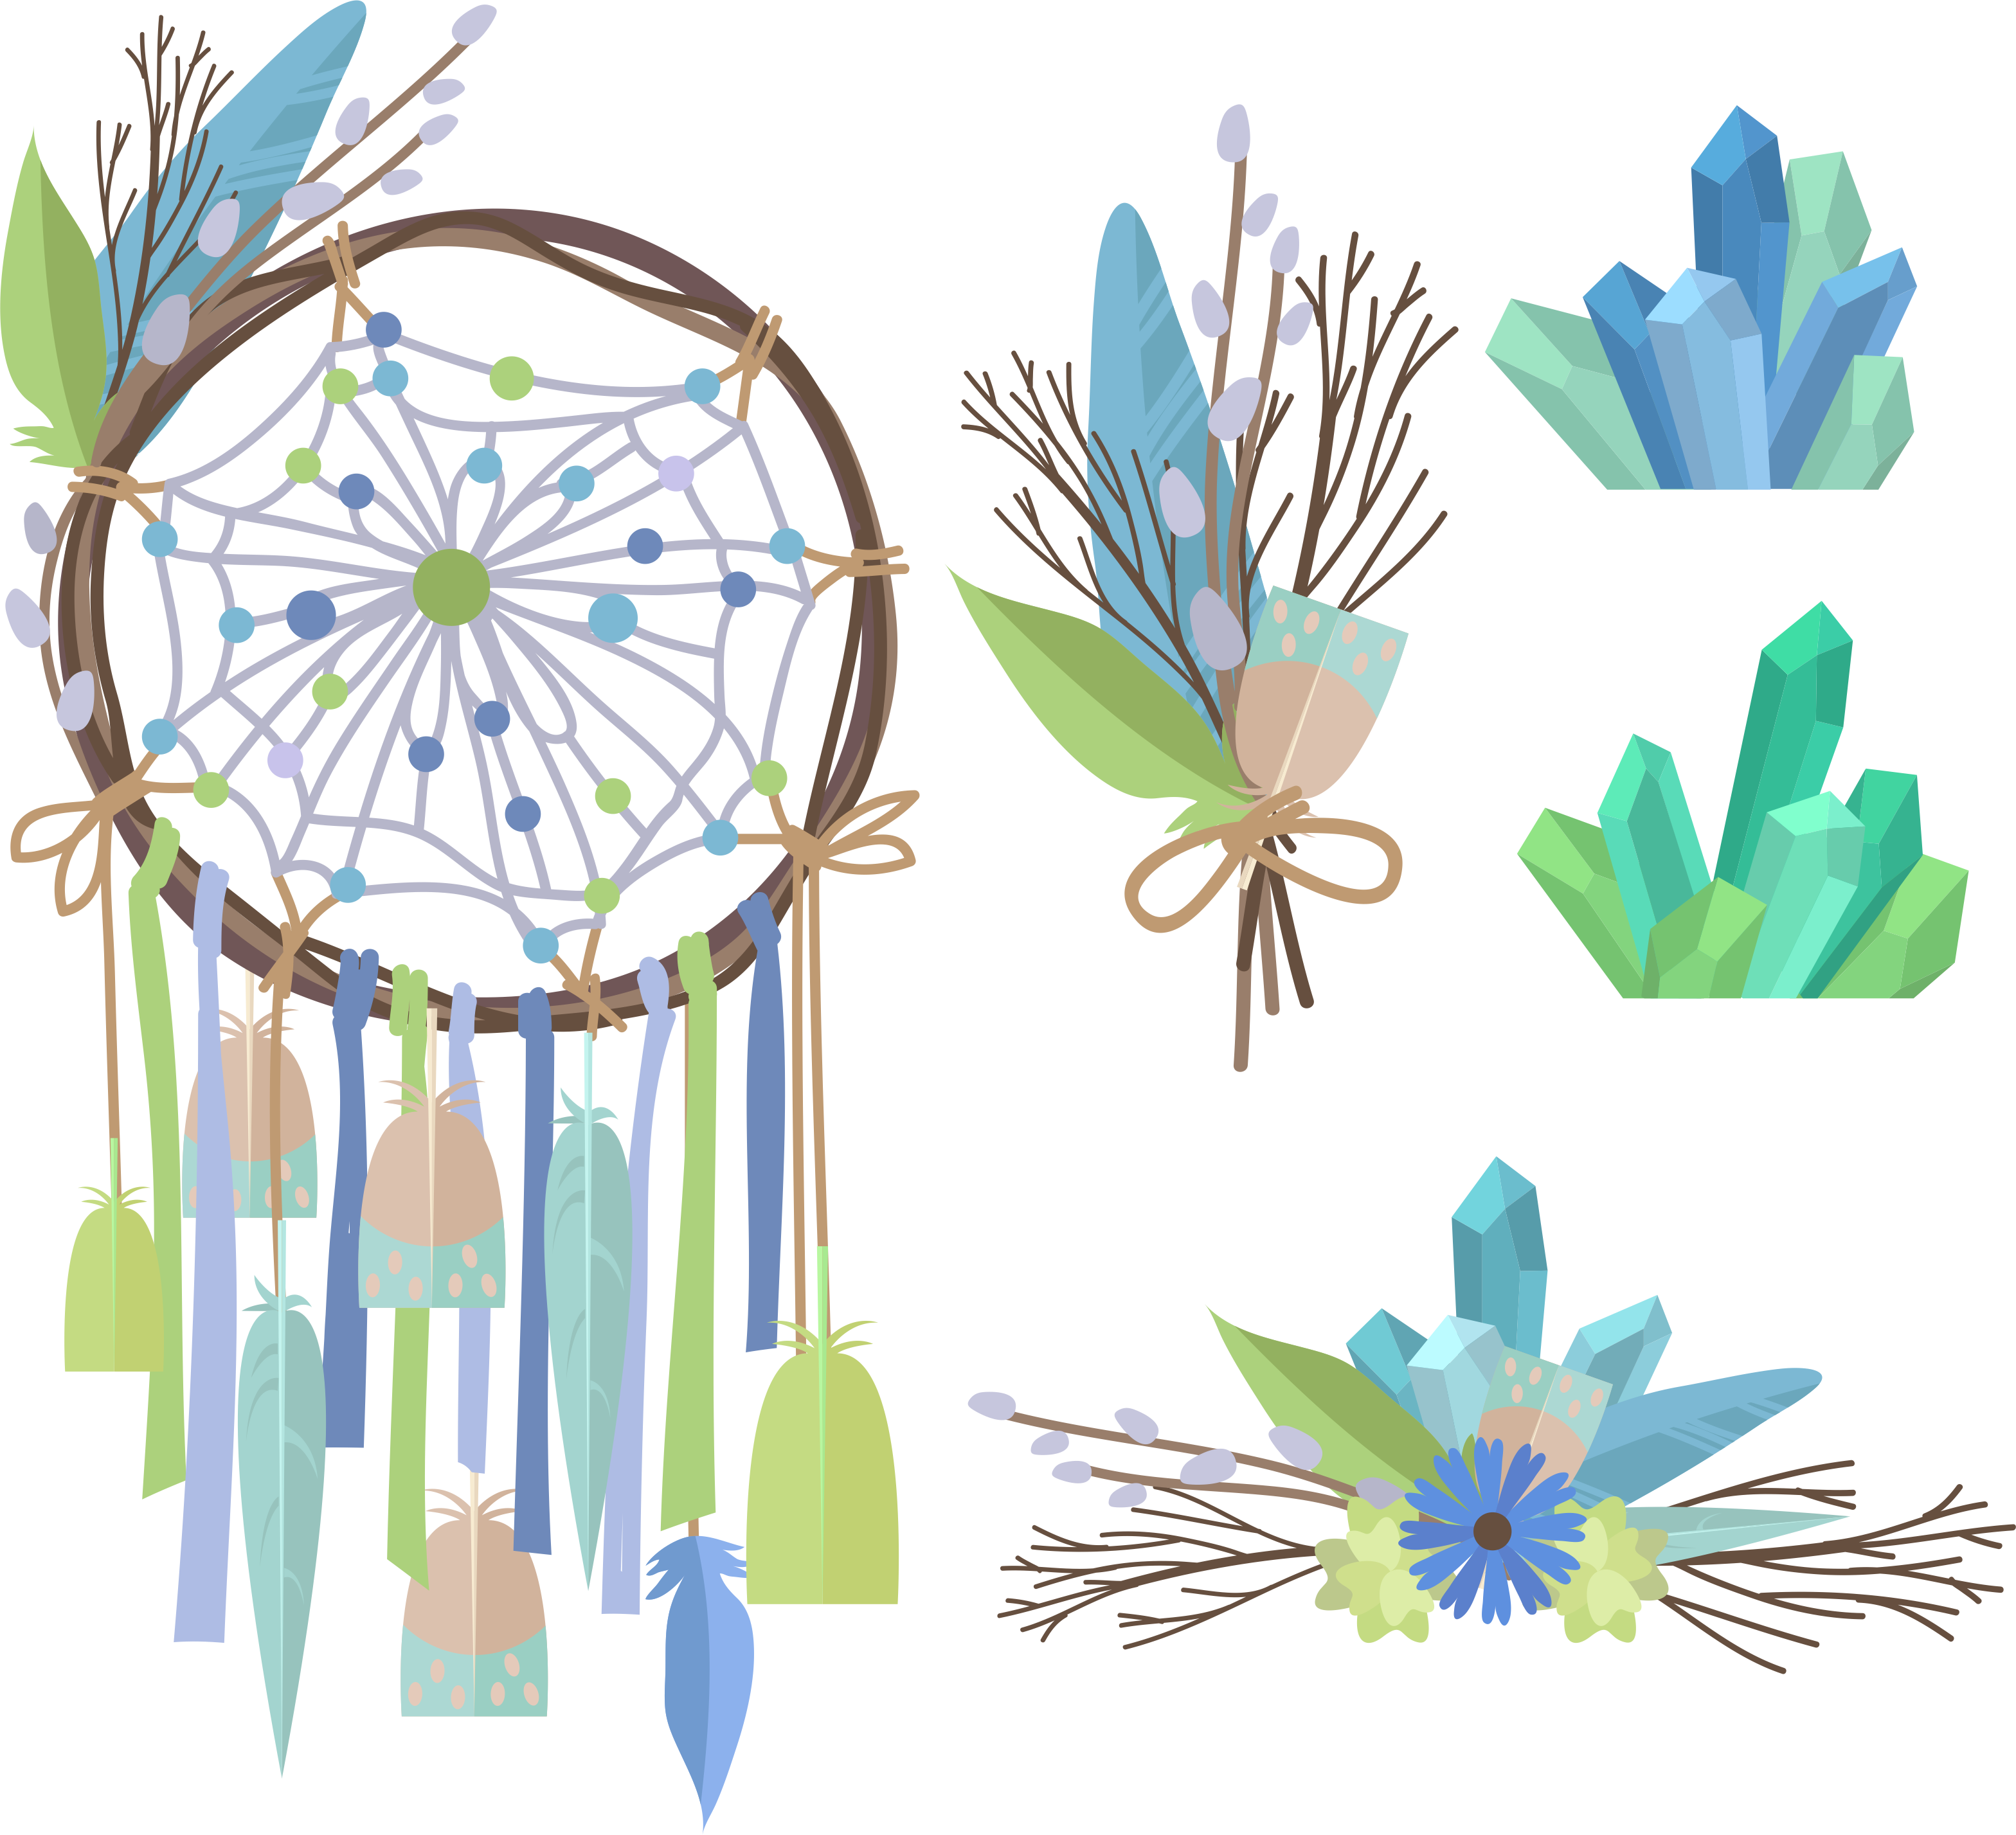 Dreamcatcher chic creative transprent. Pineapple clipart boho